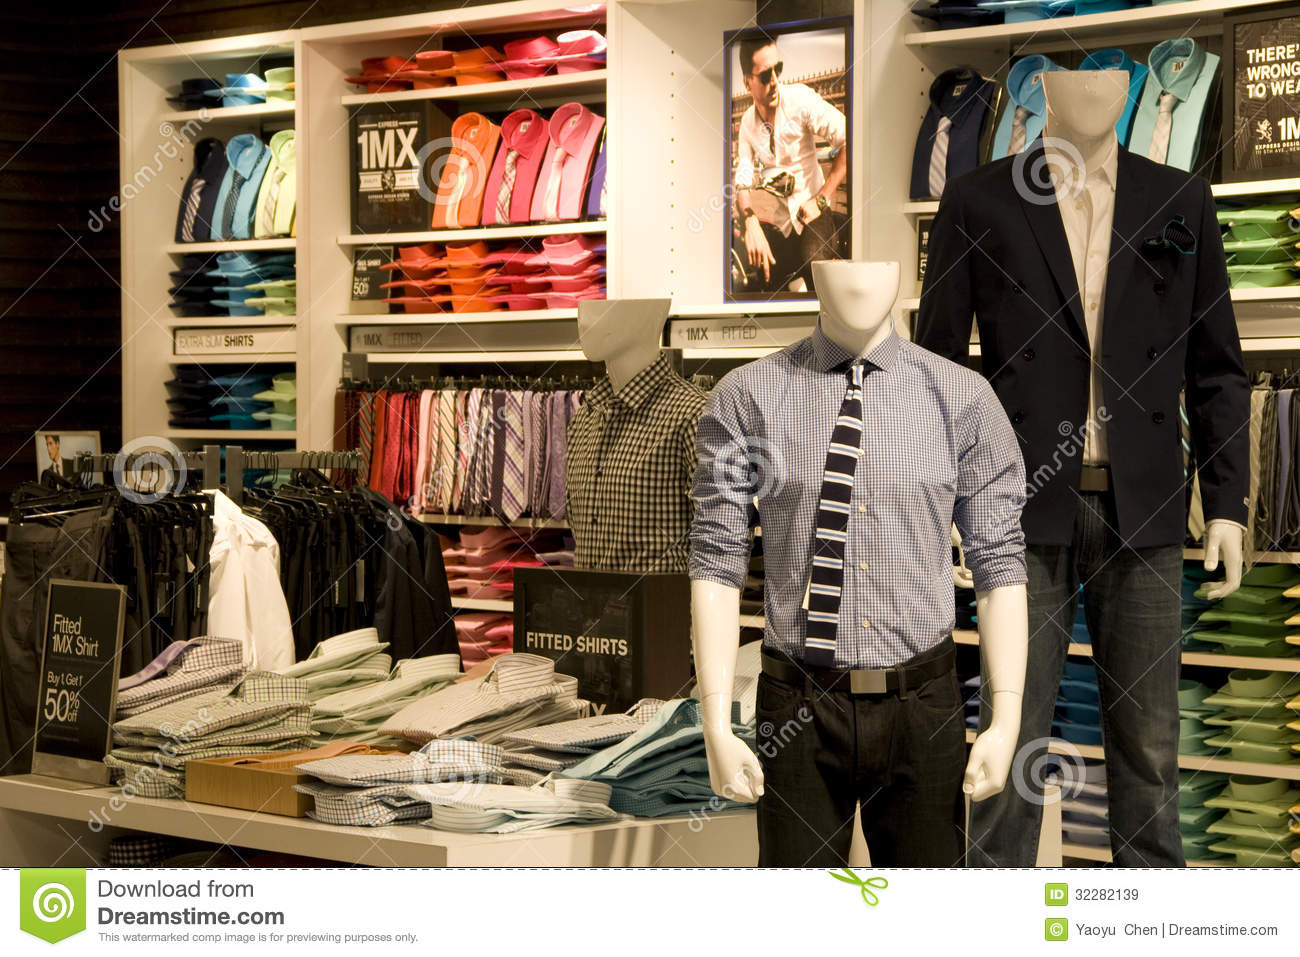 Rainbow clothing store location. Girls clothing stores